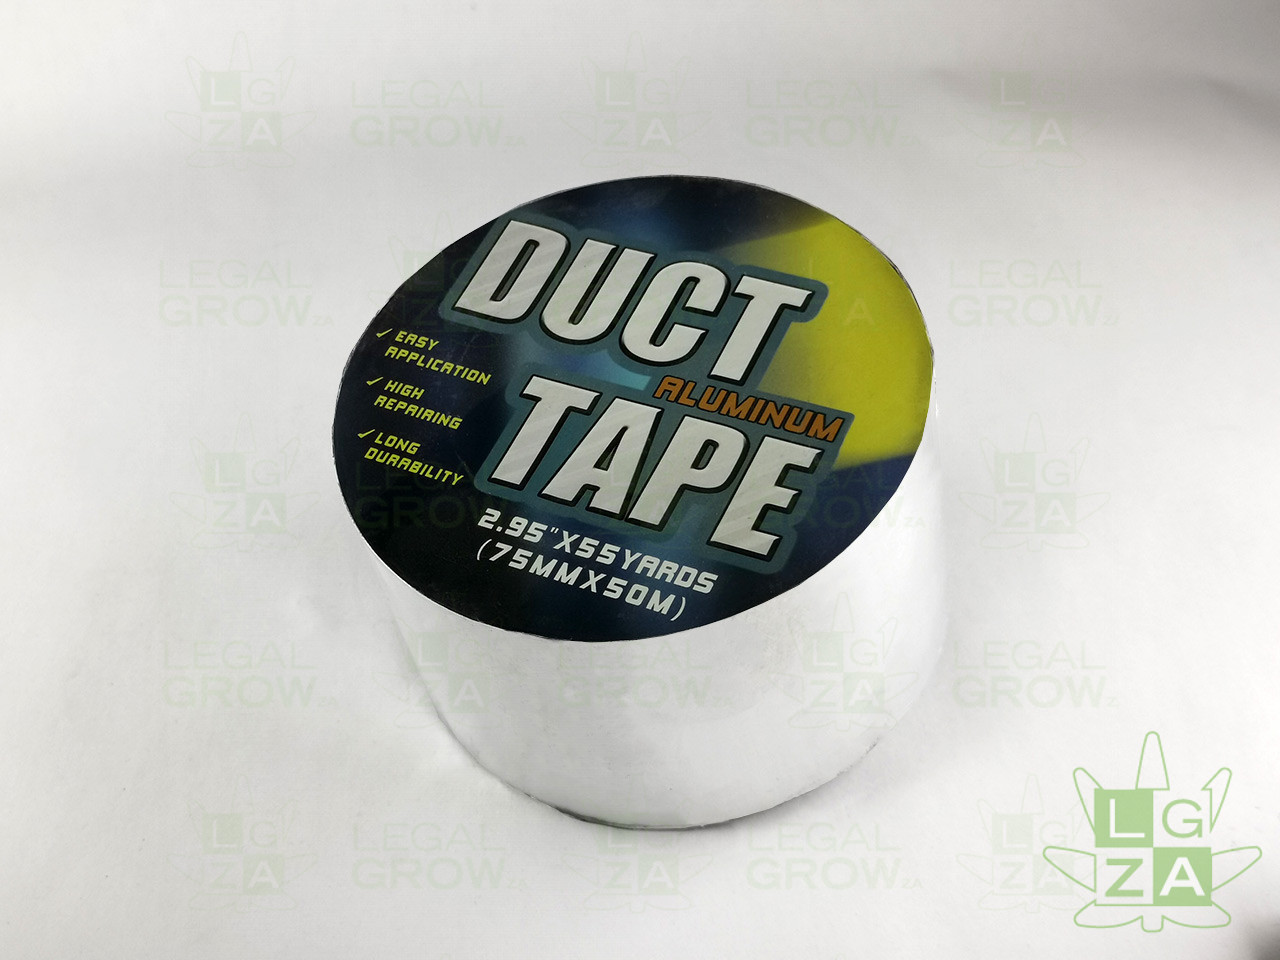 duct tape-legalgrow.co.za